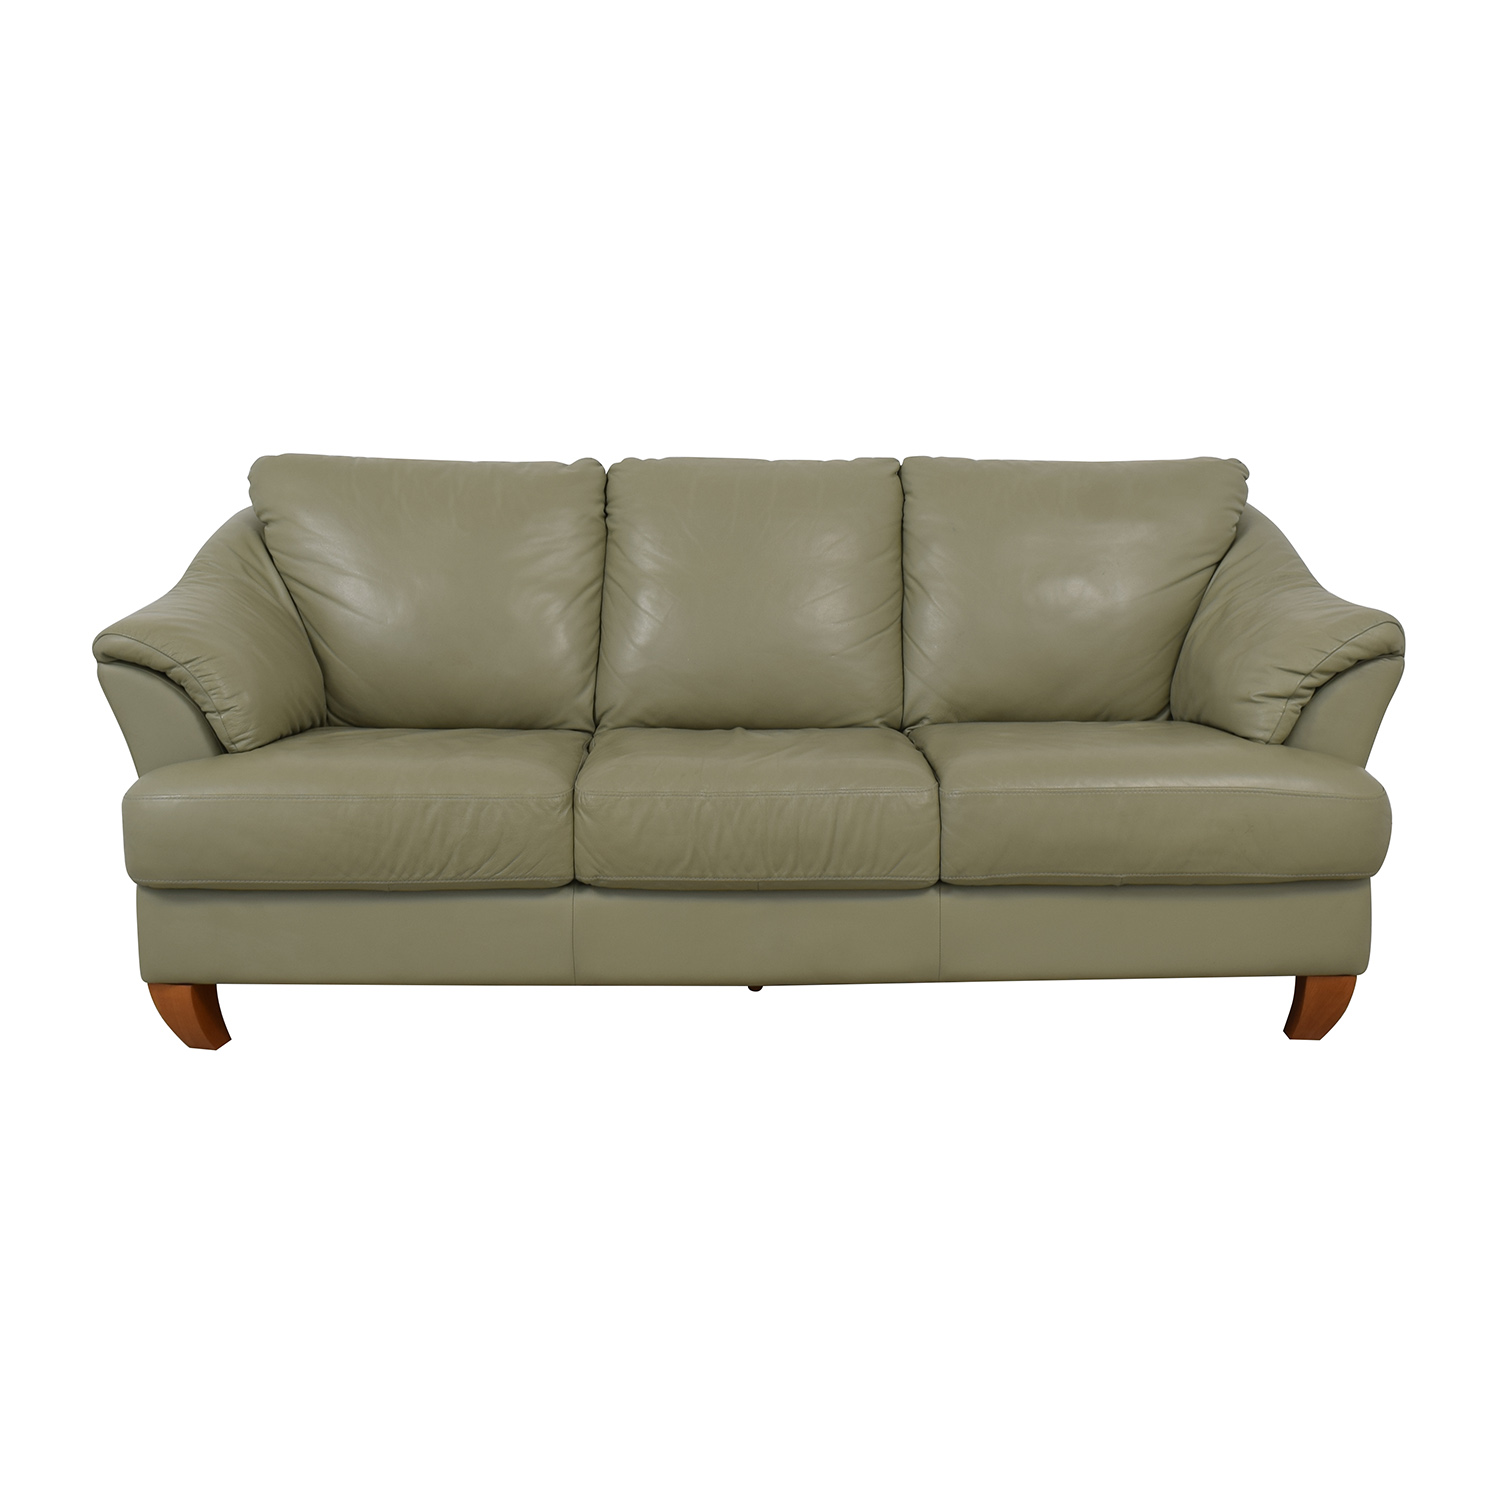 Natuzzi Natuzzi Mint Grey Three-Cushion Sofa second hand